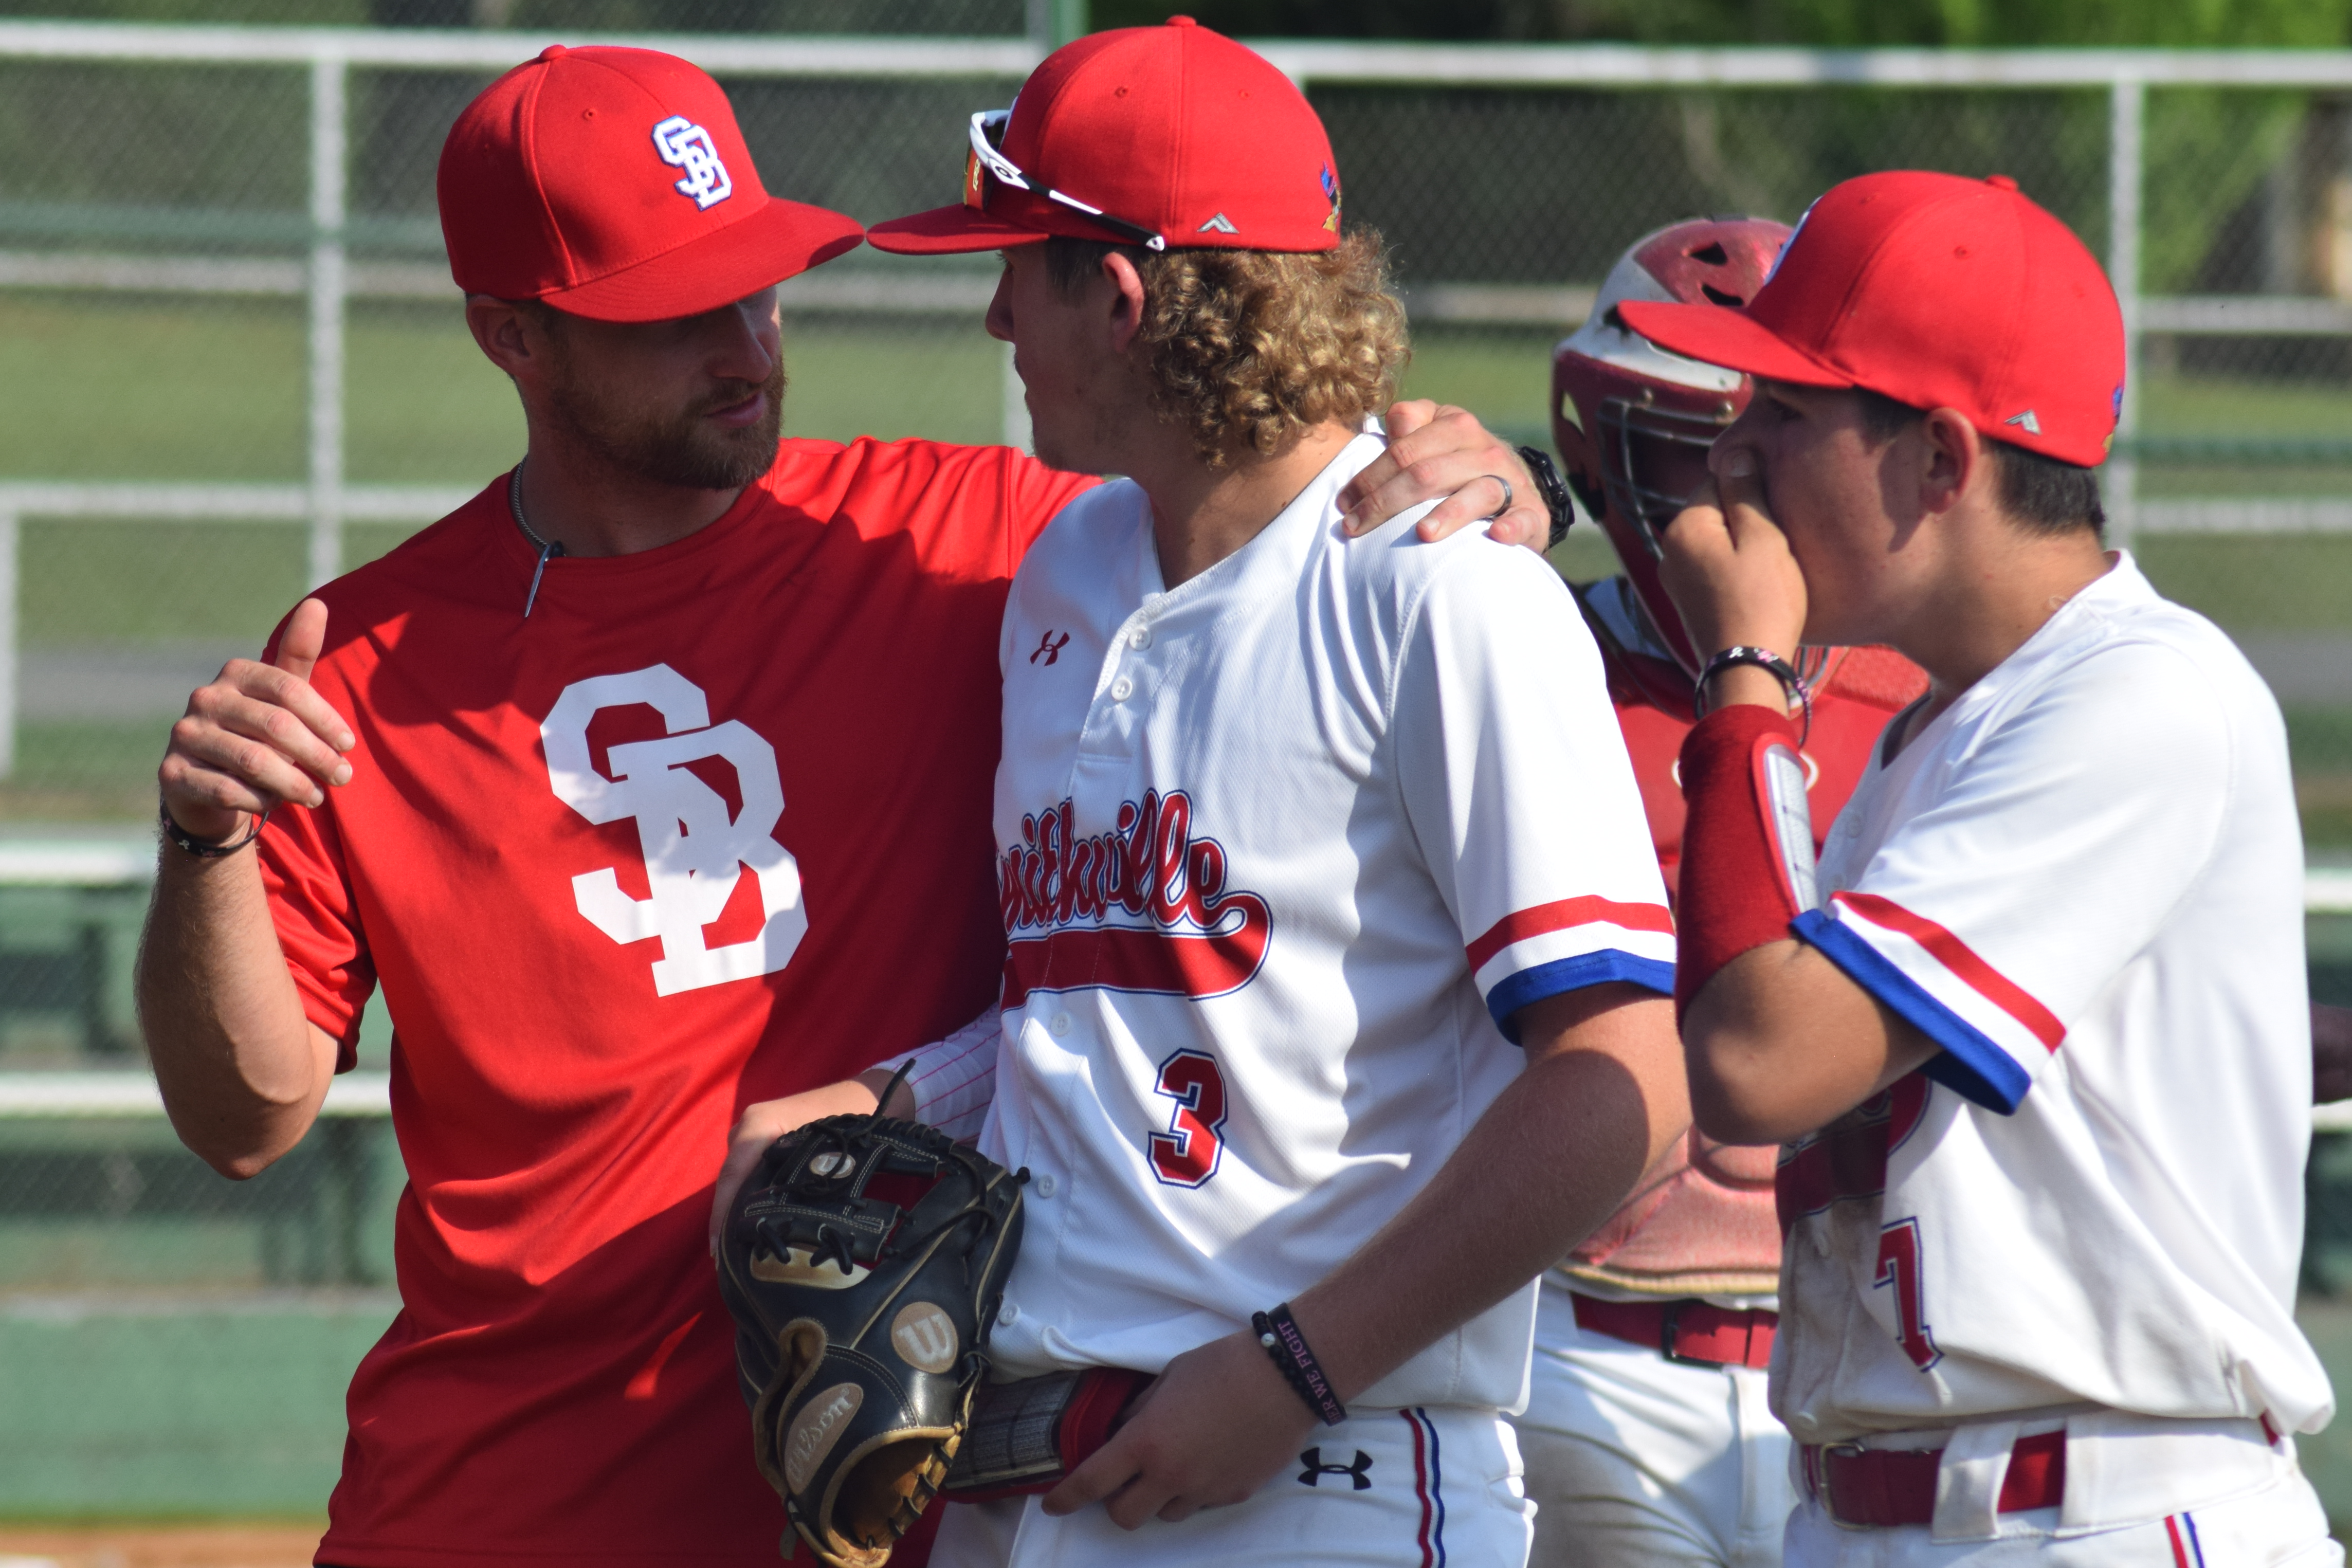 Baseball coach with players